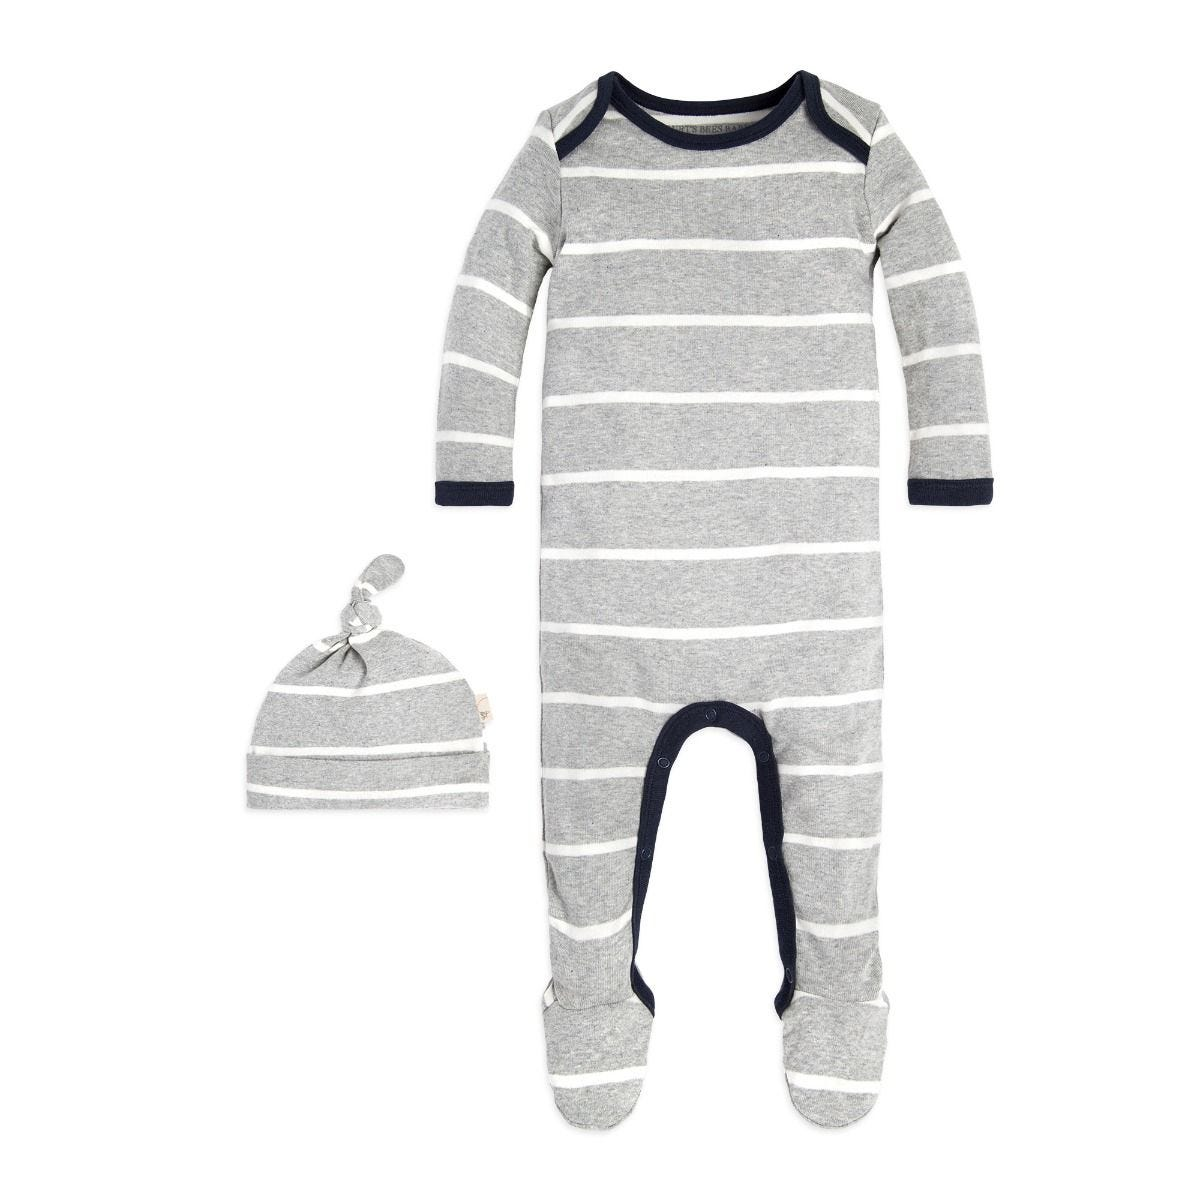 871d1ac7d2e1 Variegated Stripe Footed Organic Baby One Piece Jumpsuit   Hat Set